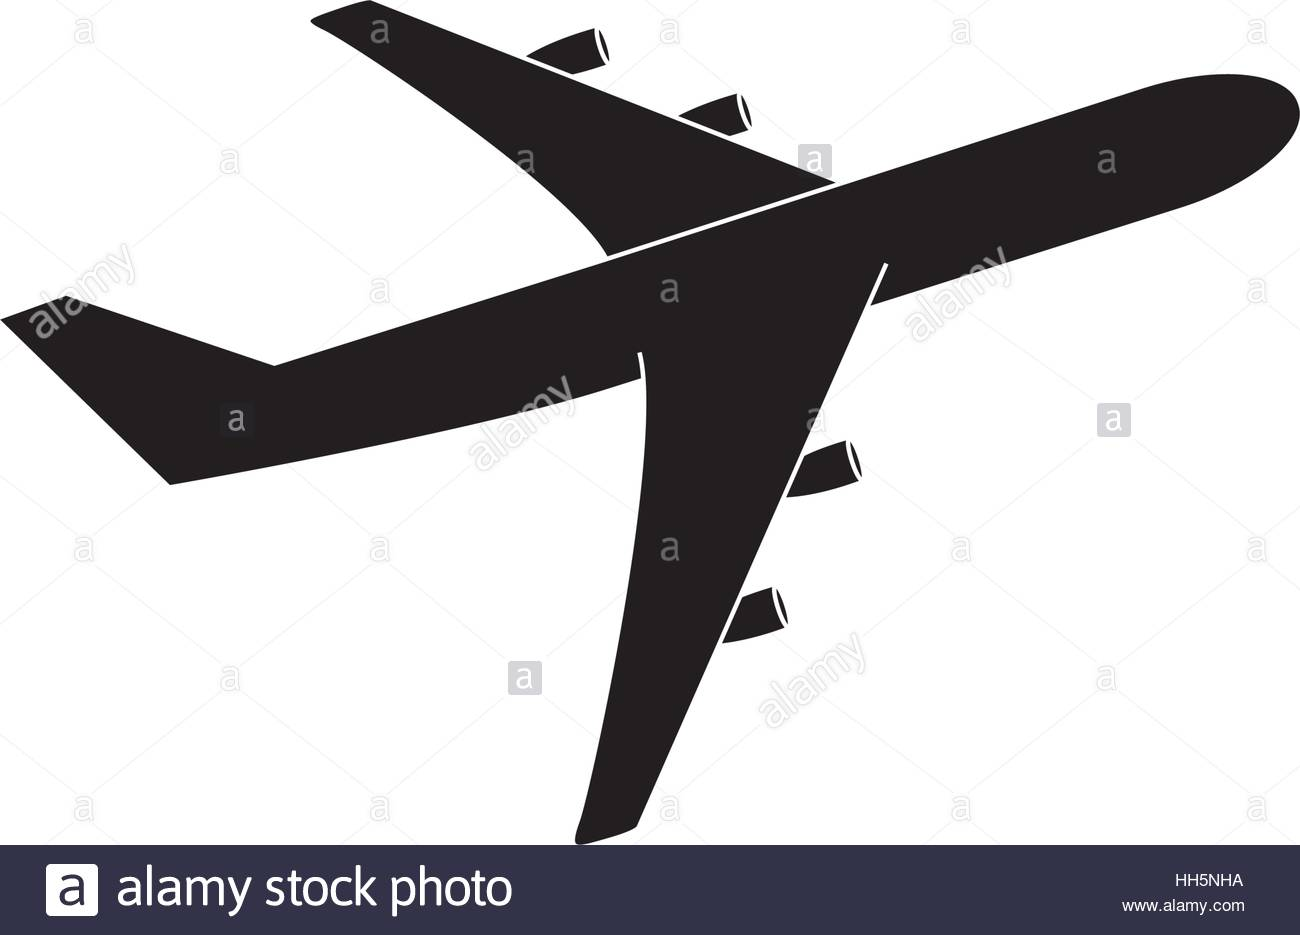 Vector Airplane Symbol Icon Pictogram Vektor Flugzeug